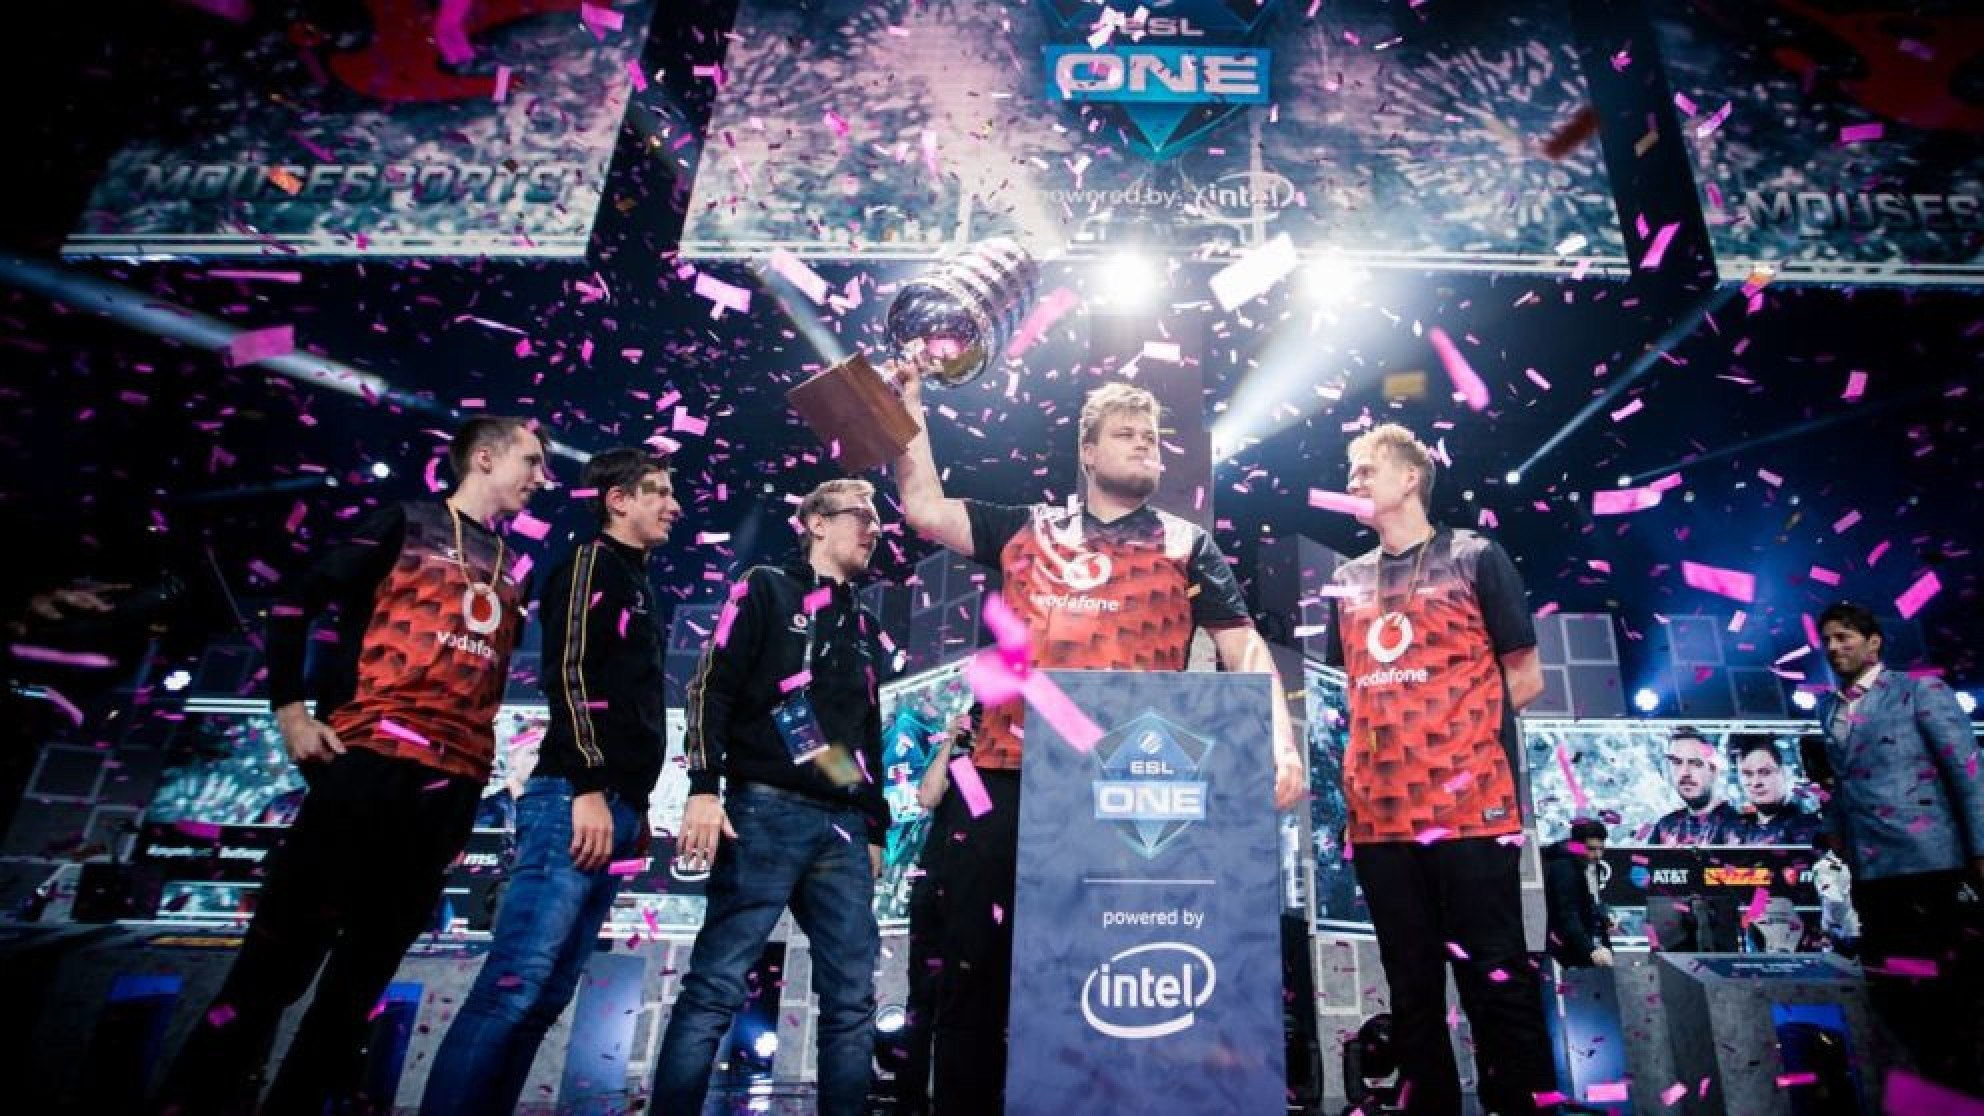 Mousesports won ESL One New York